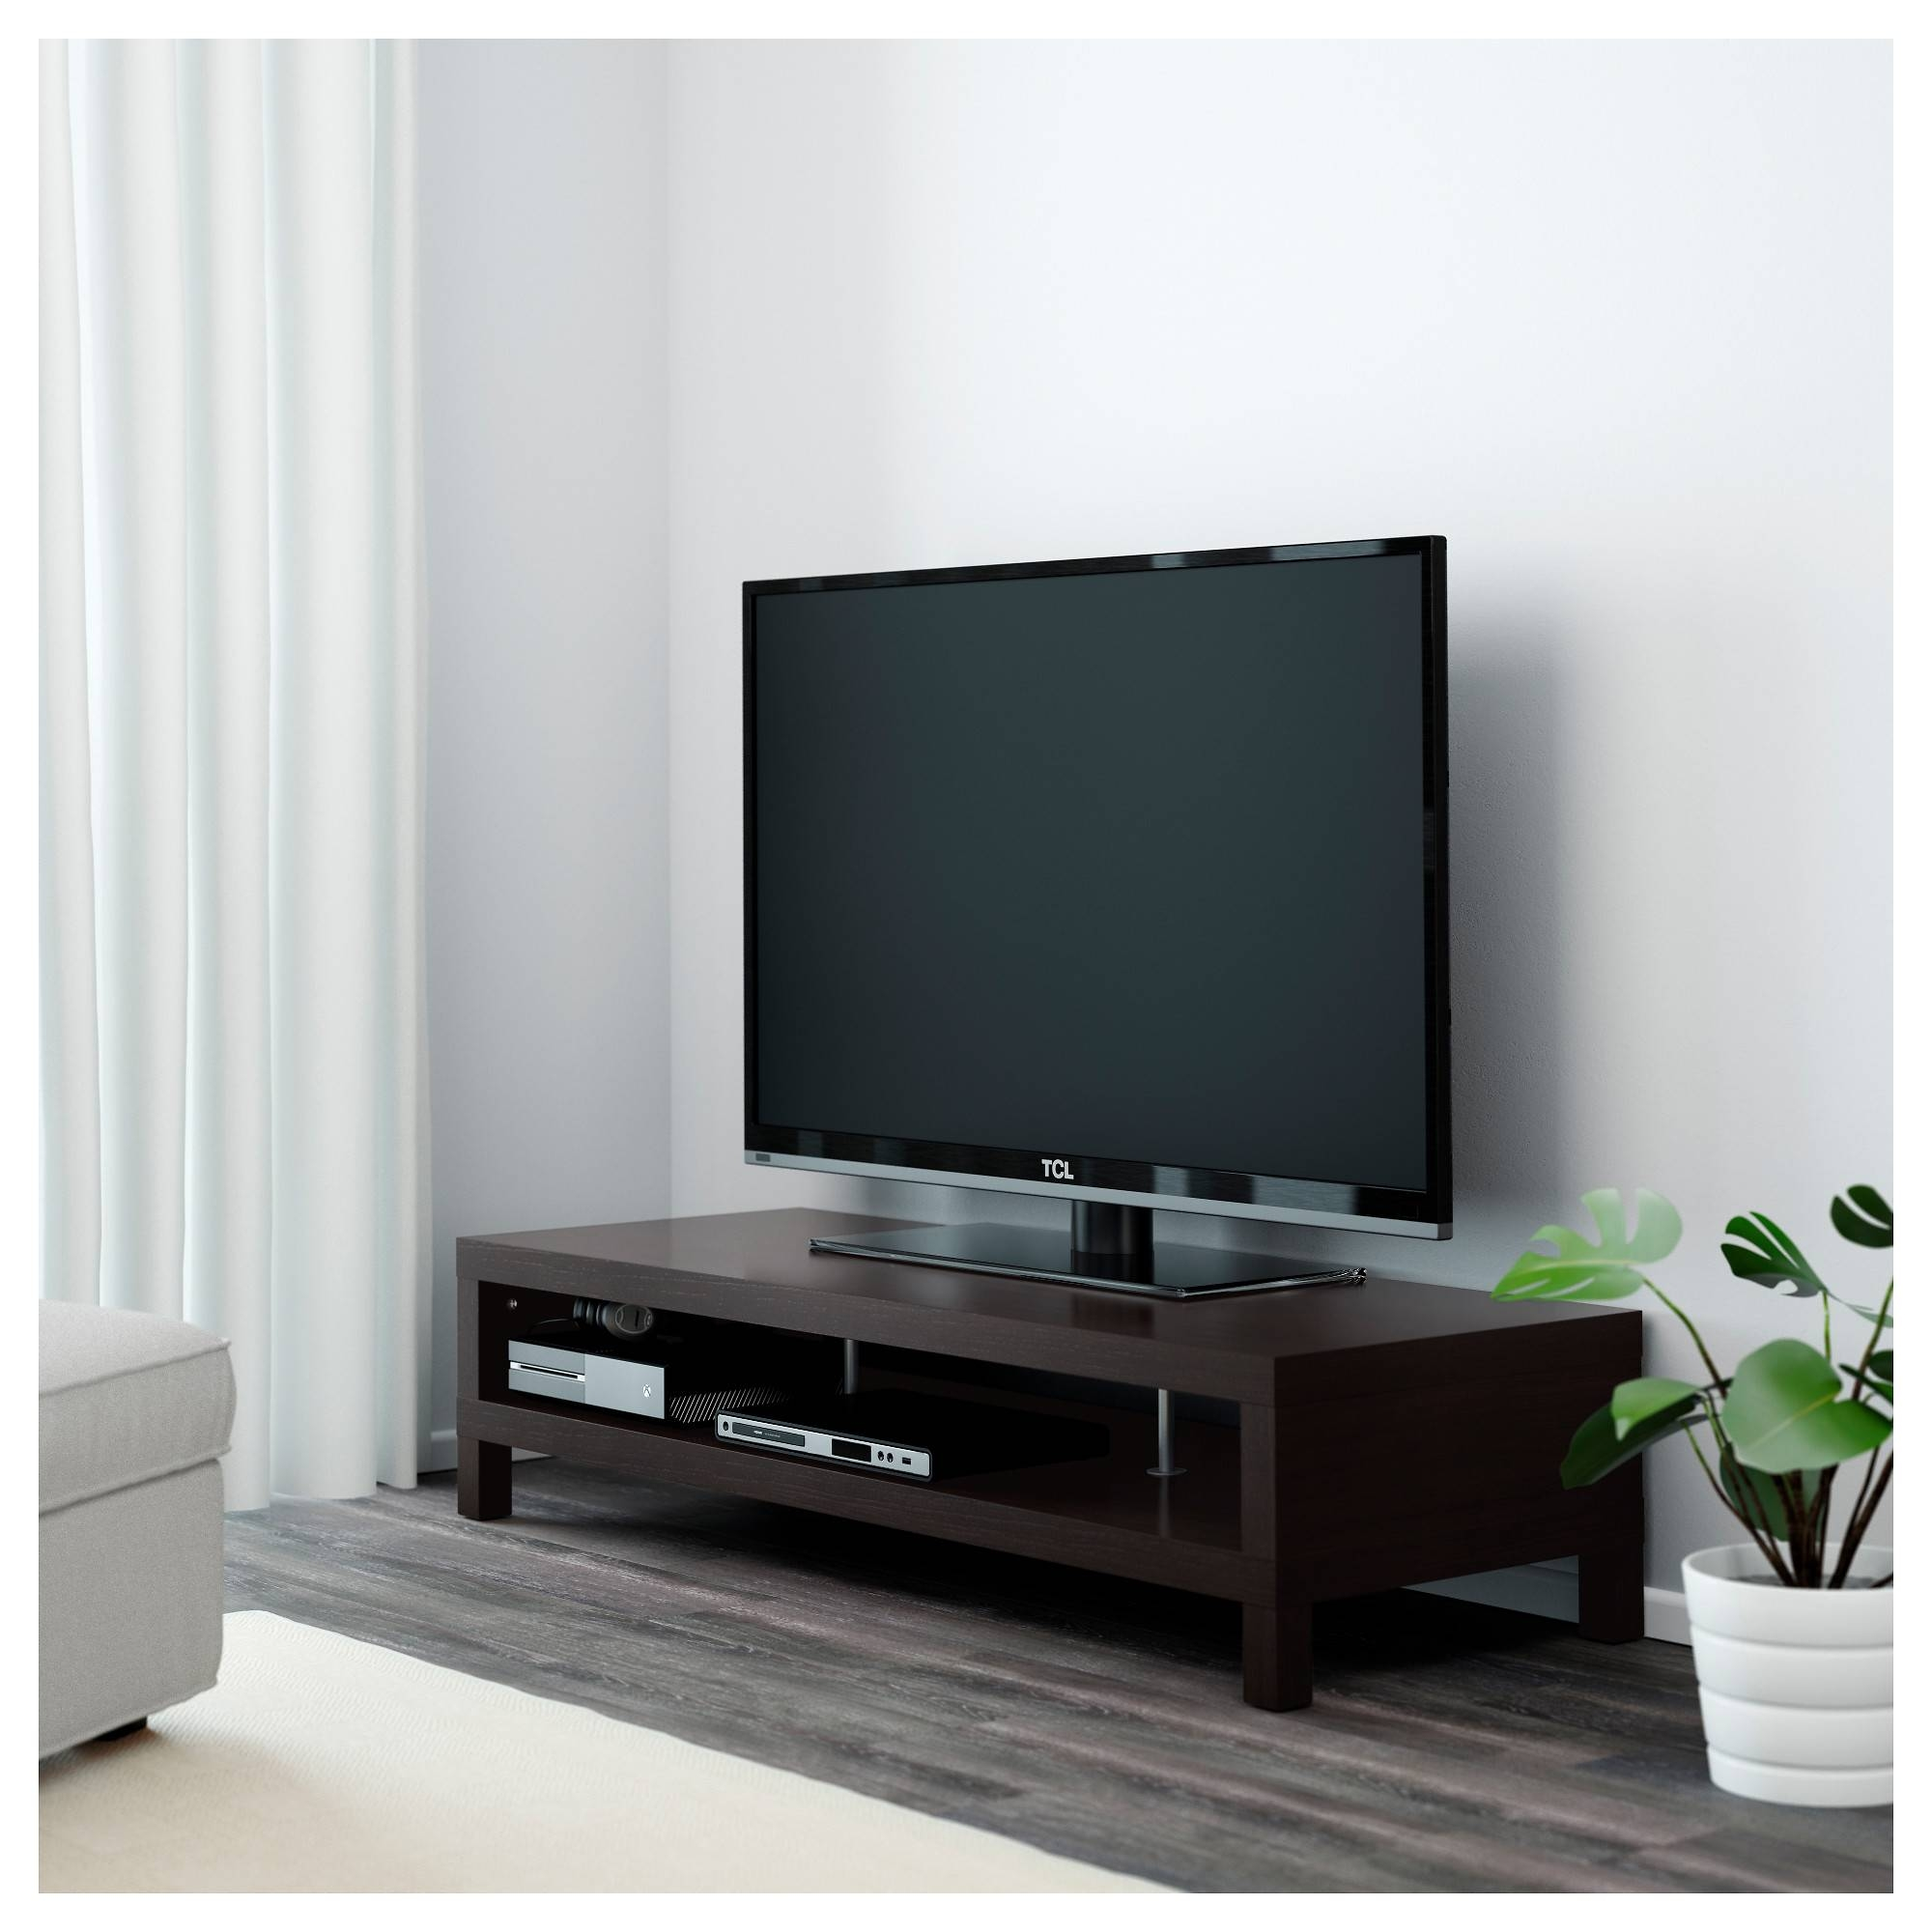 Lack Tv Unit - Ikea with regard to Dark Tv Stands (Image 7 of 15)